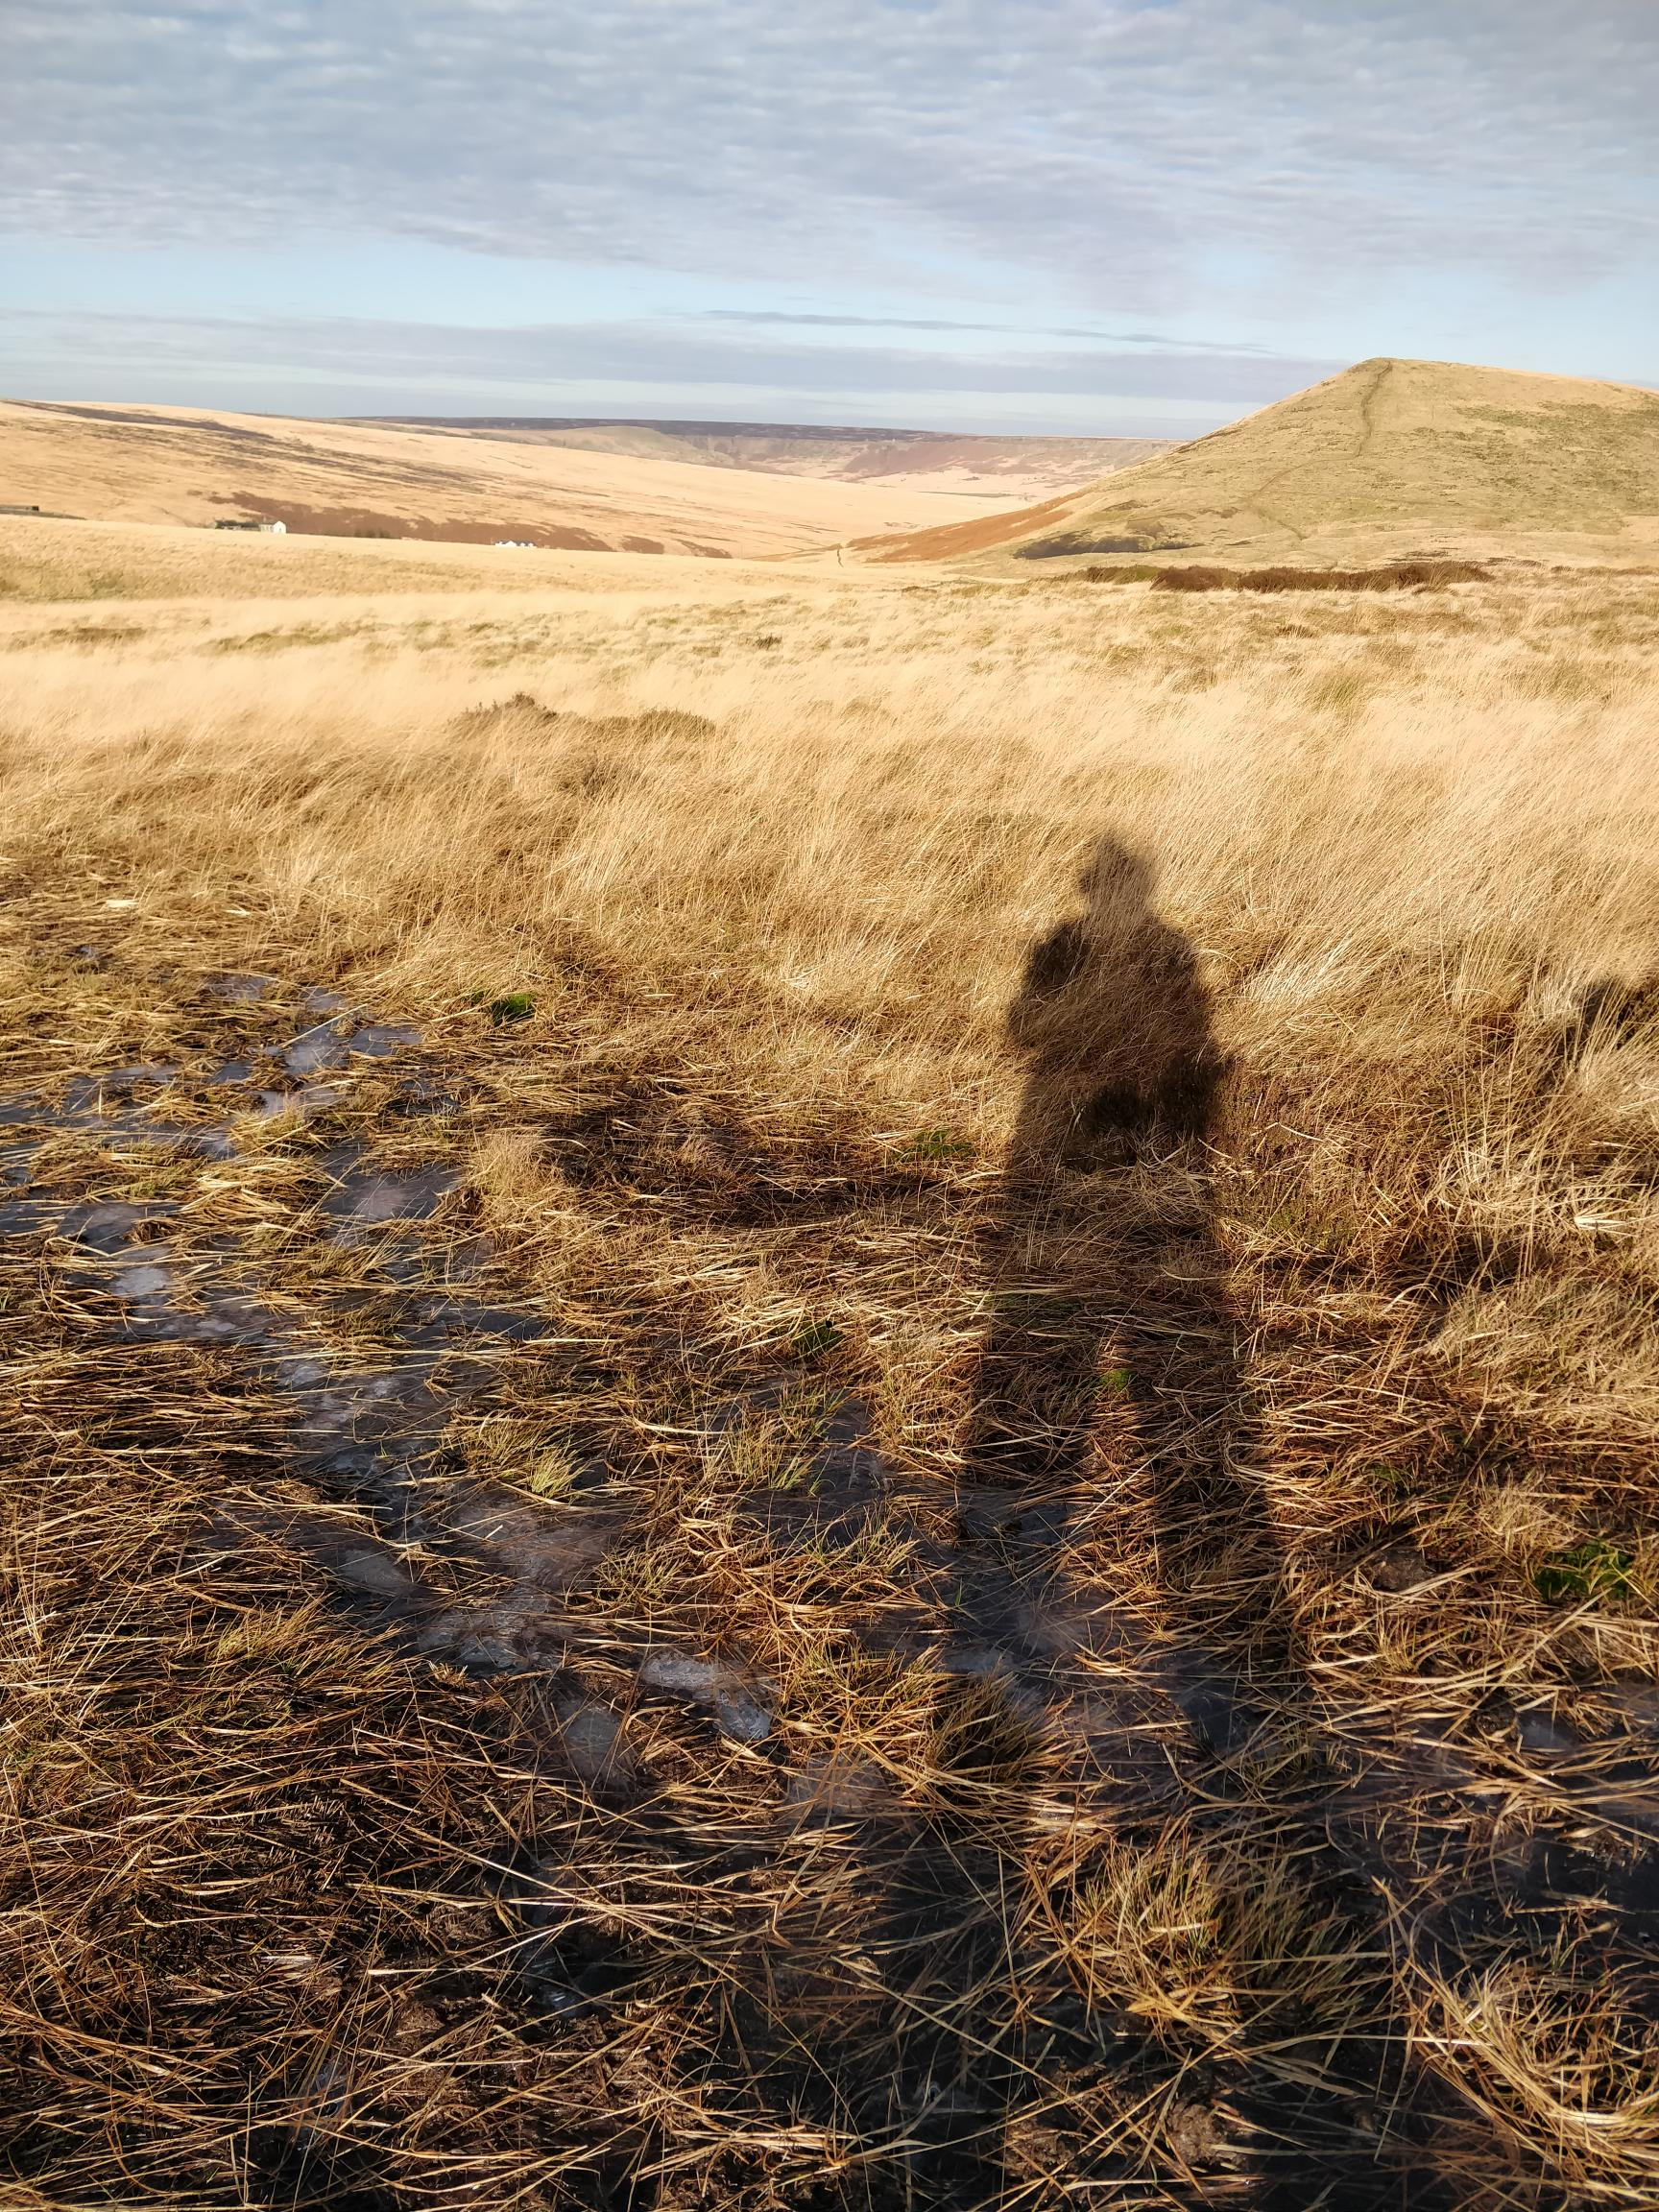 long shadow of a figure with sunny moorland and hills in the background